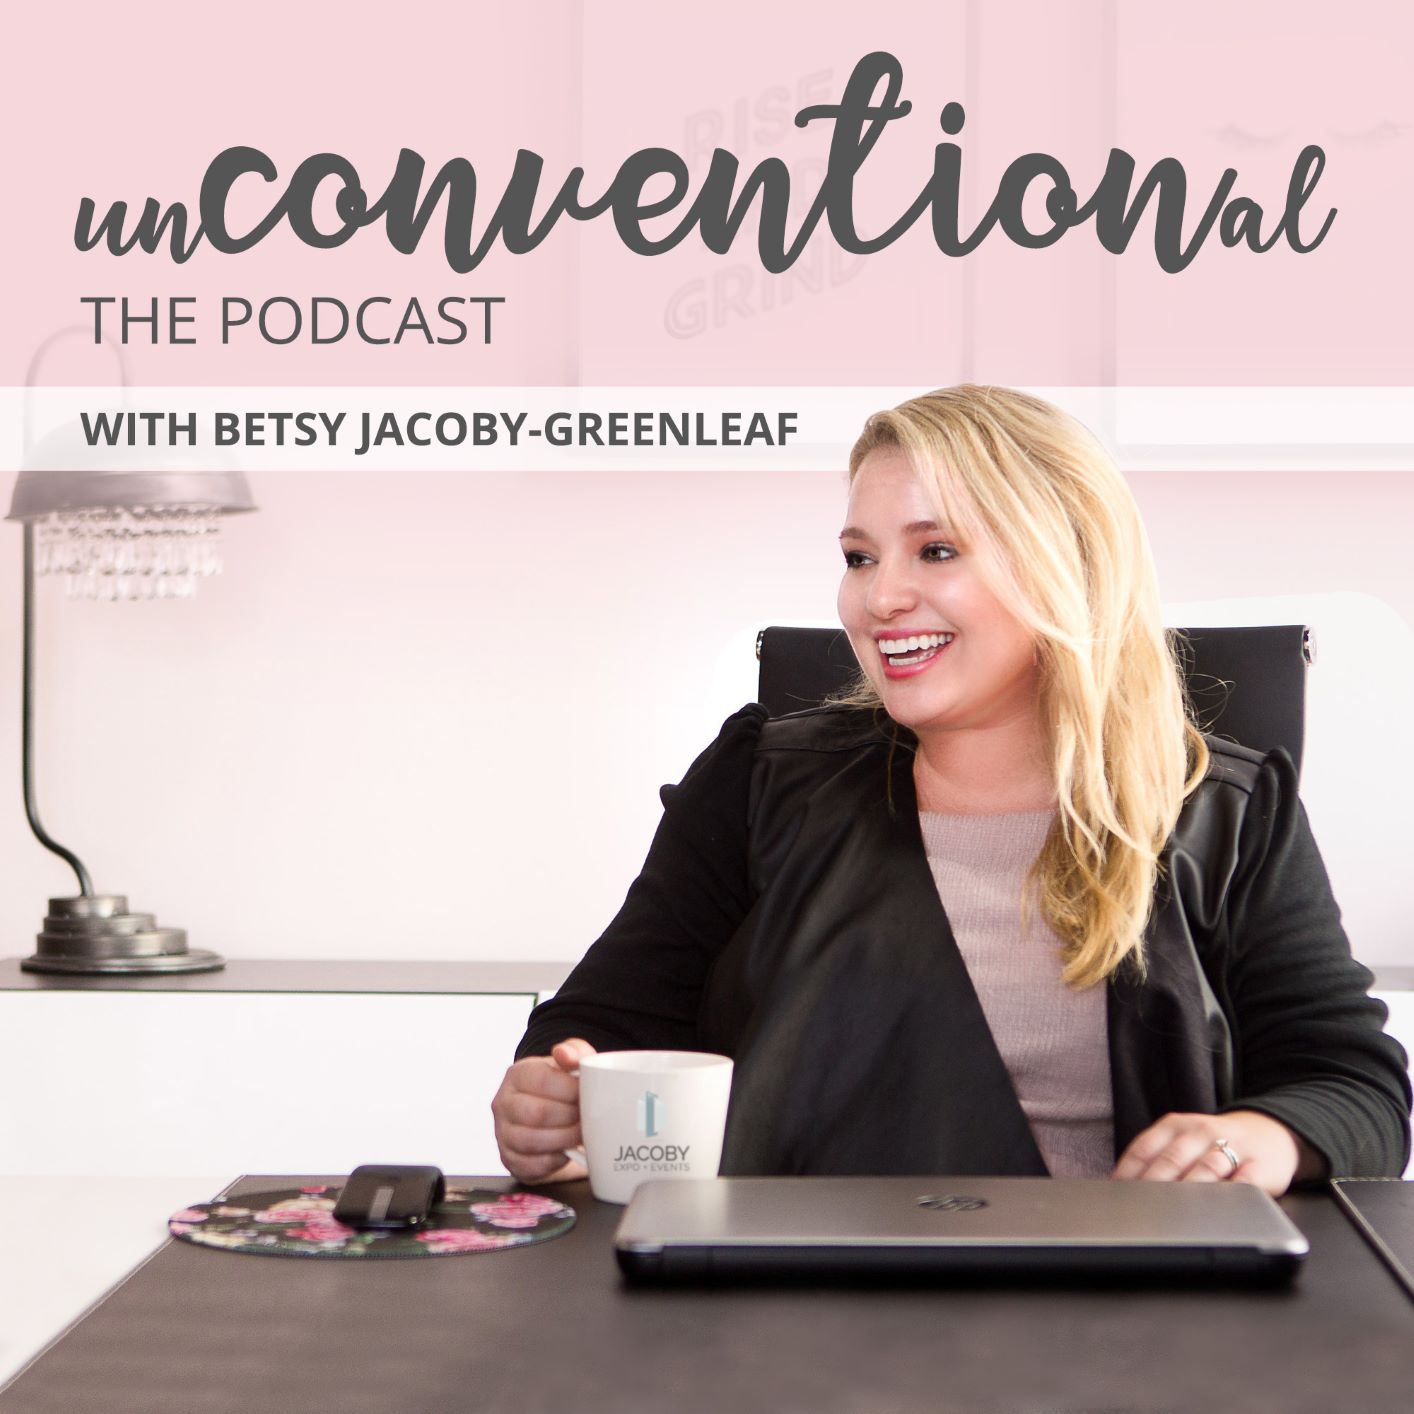 unCONVENTIONal, The Podcast show art